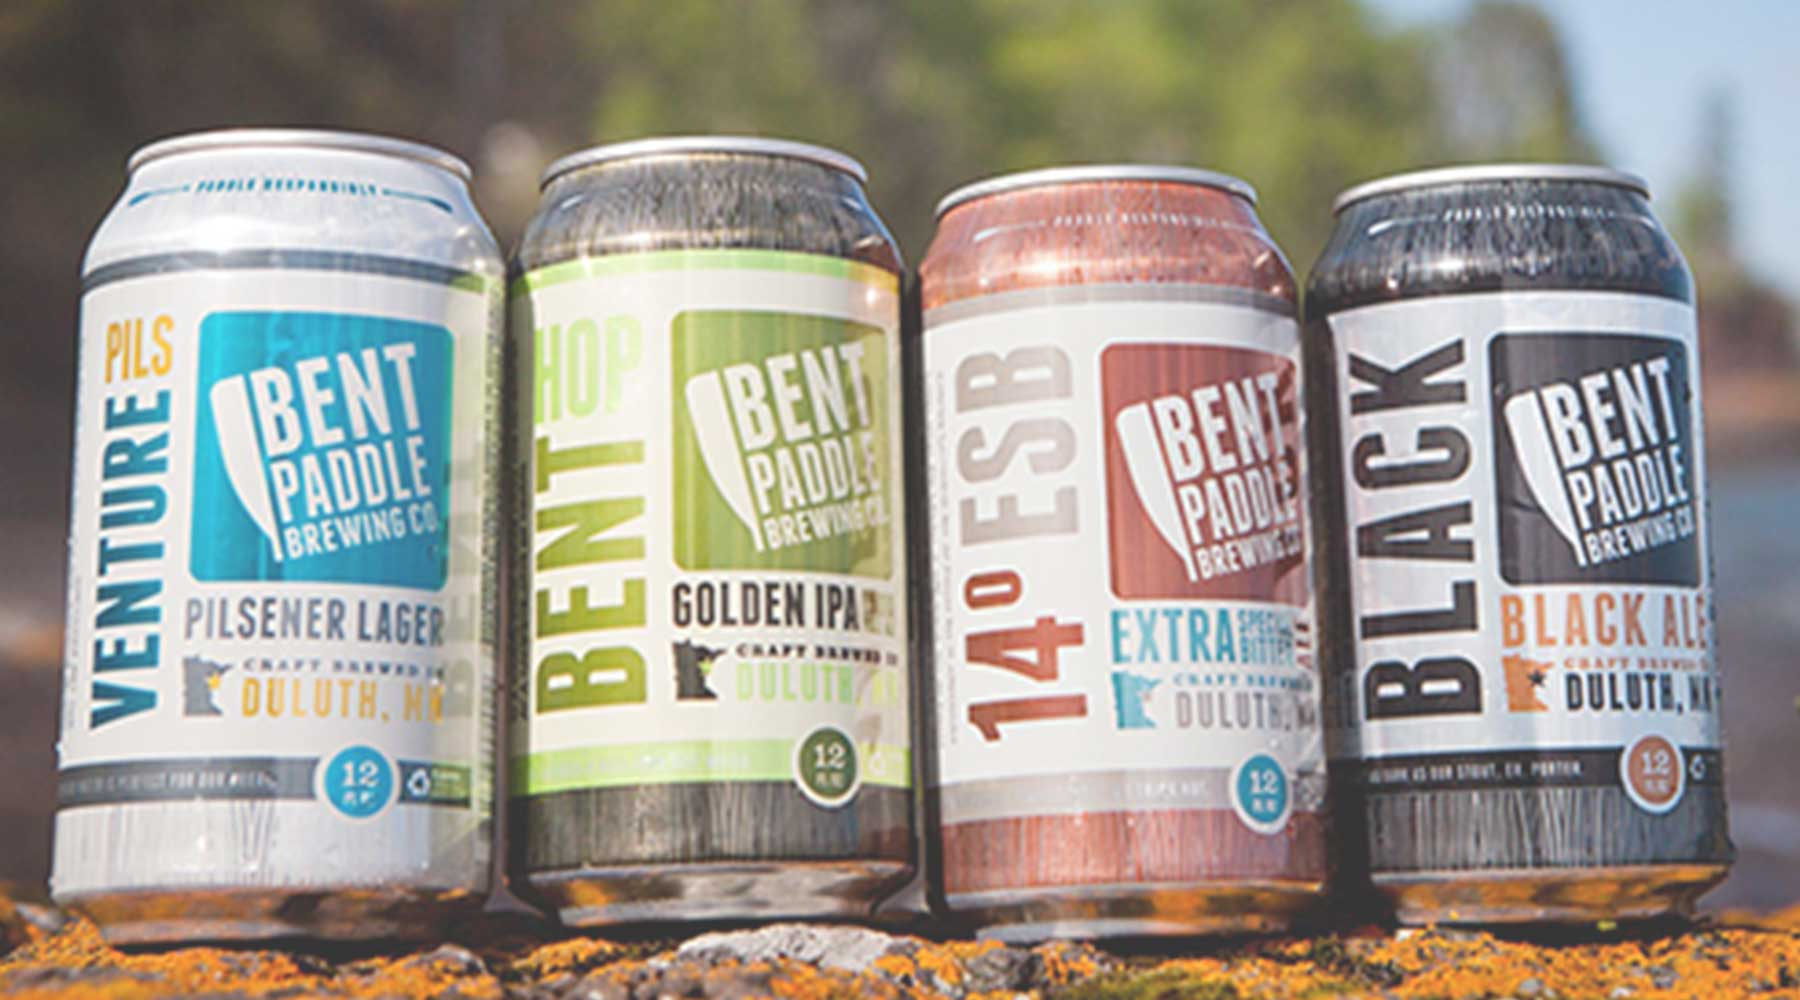 Bent Paddle Brewing Company | Just Wine